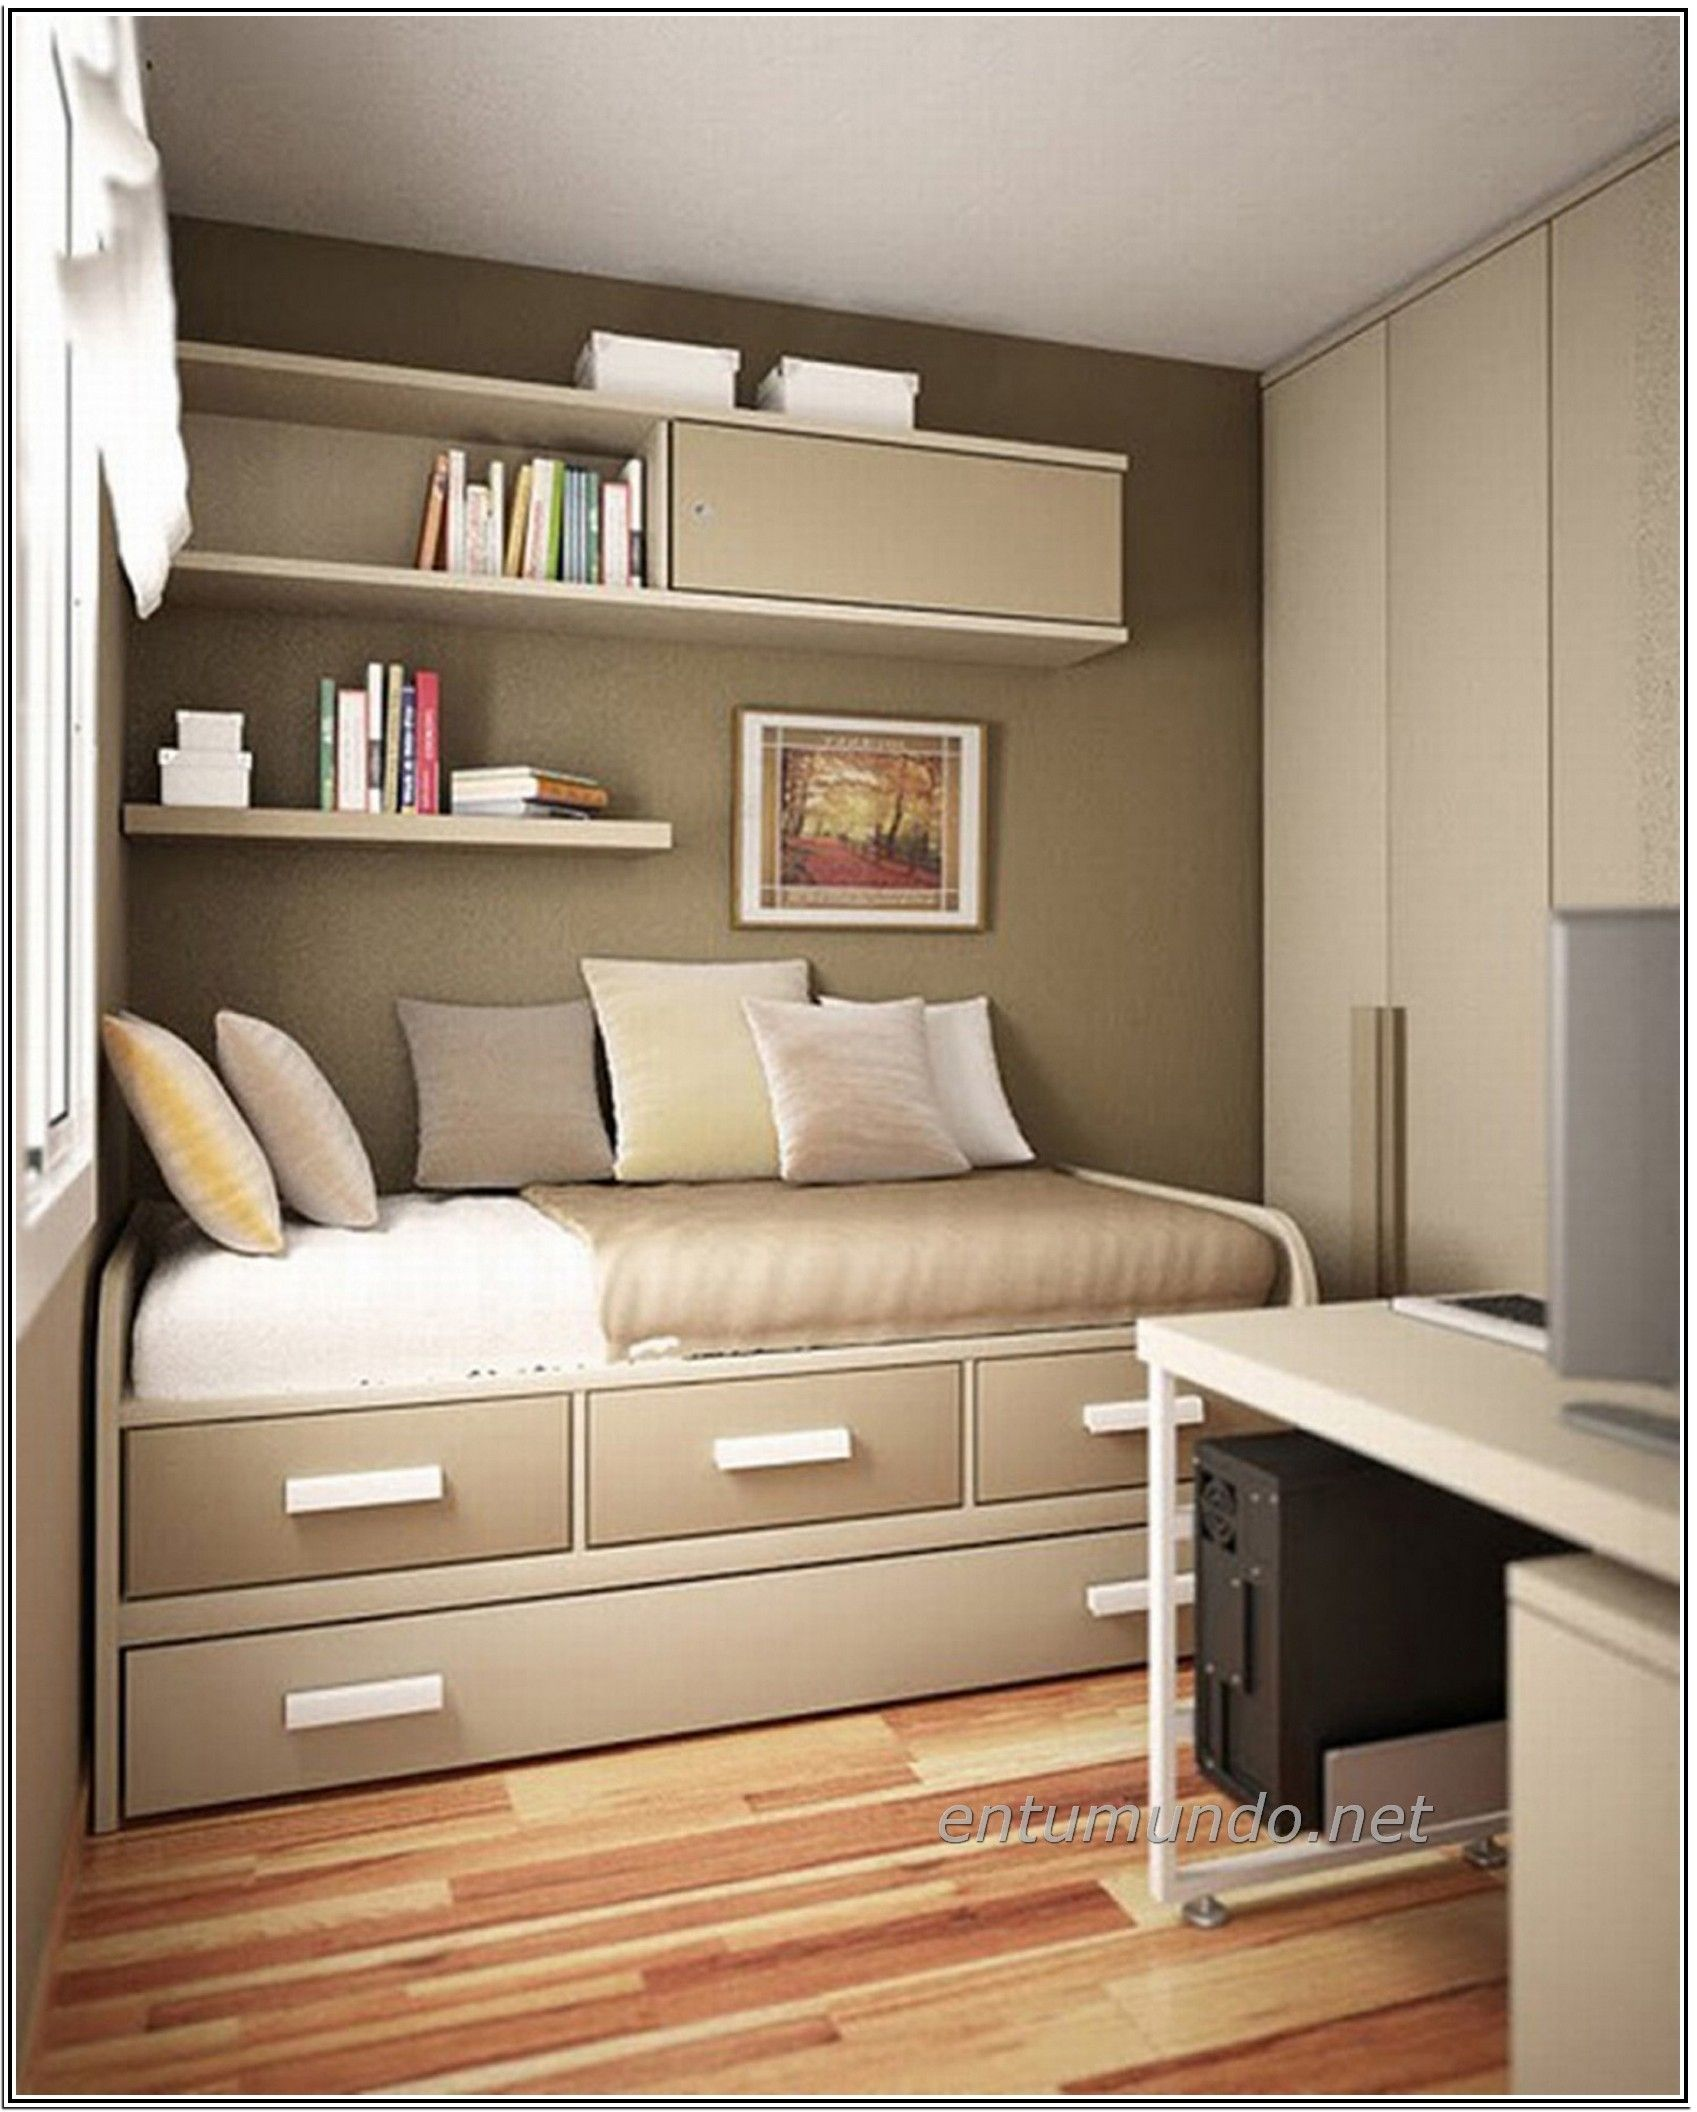 Space Saving Ideas For Master Bedroom Small Bedroom Decor Small Space Bedroom Small Room Bedroom